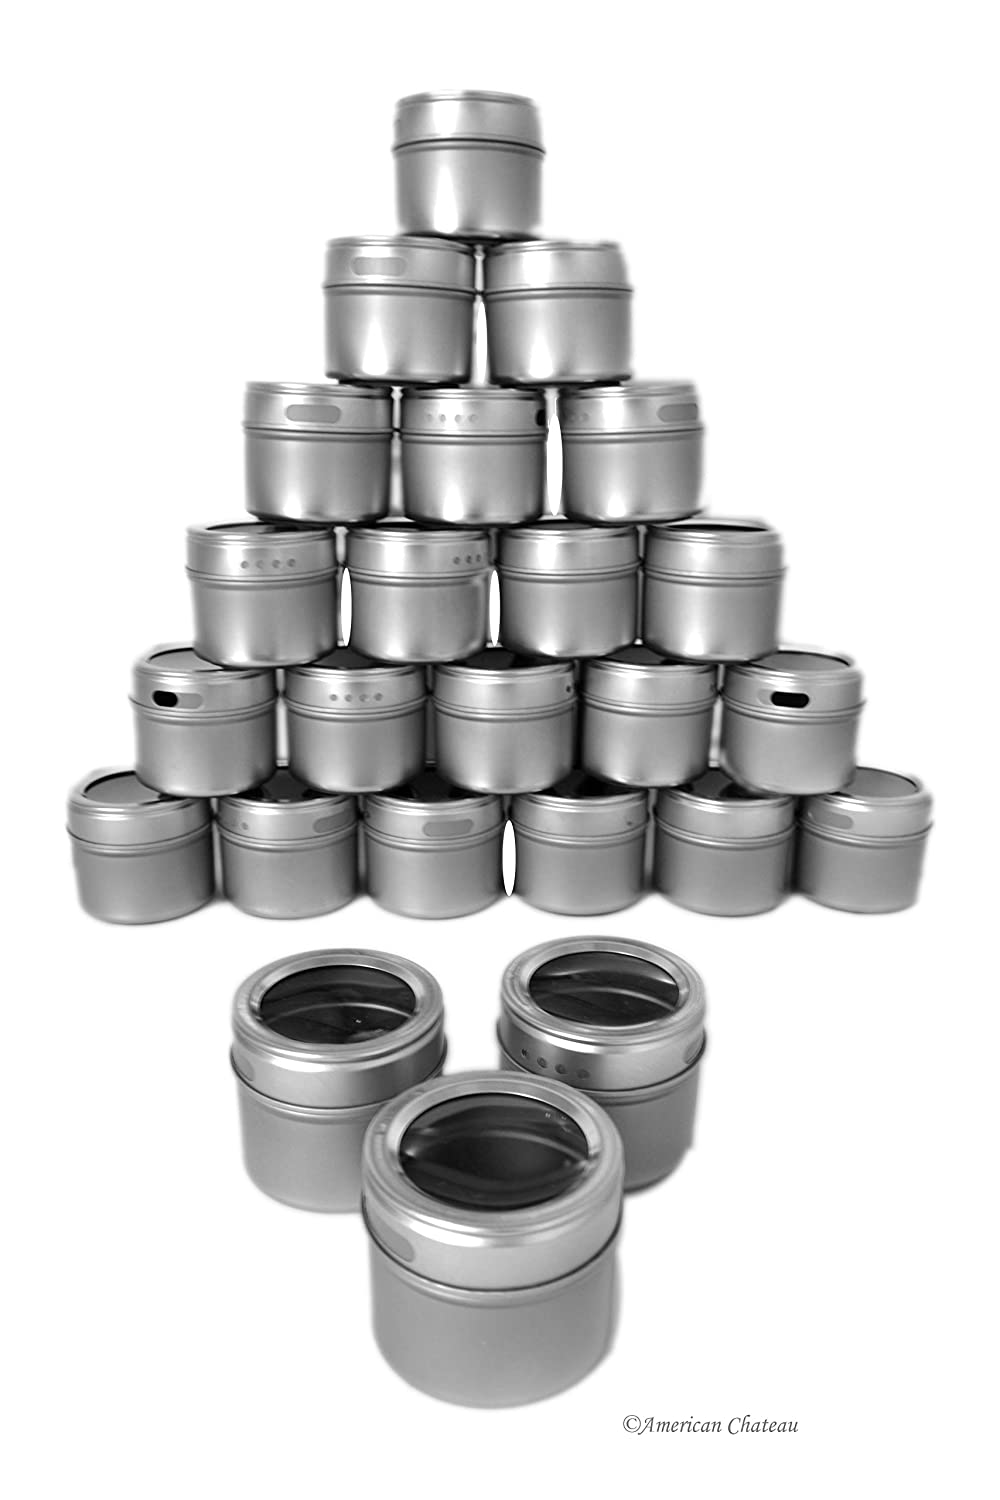 Set 24 Magnetic Stainless Steel 2.5oz Kitchen Spice Home Organization Jars American Chateau